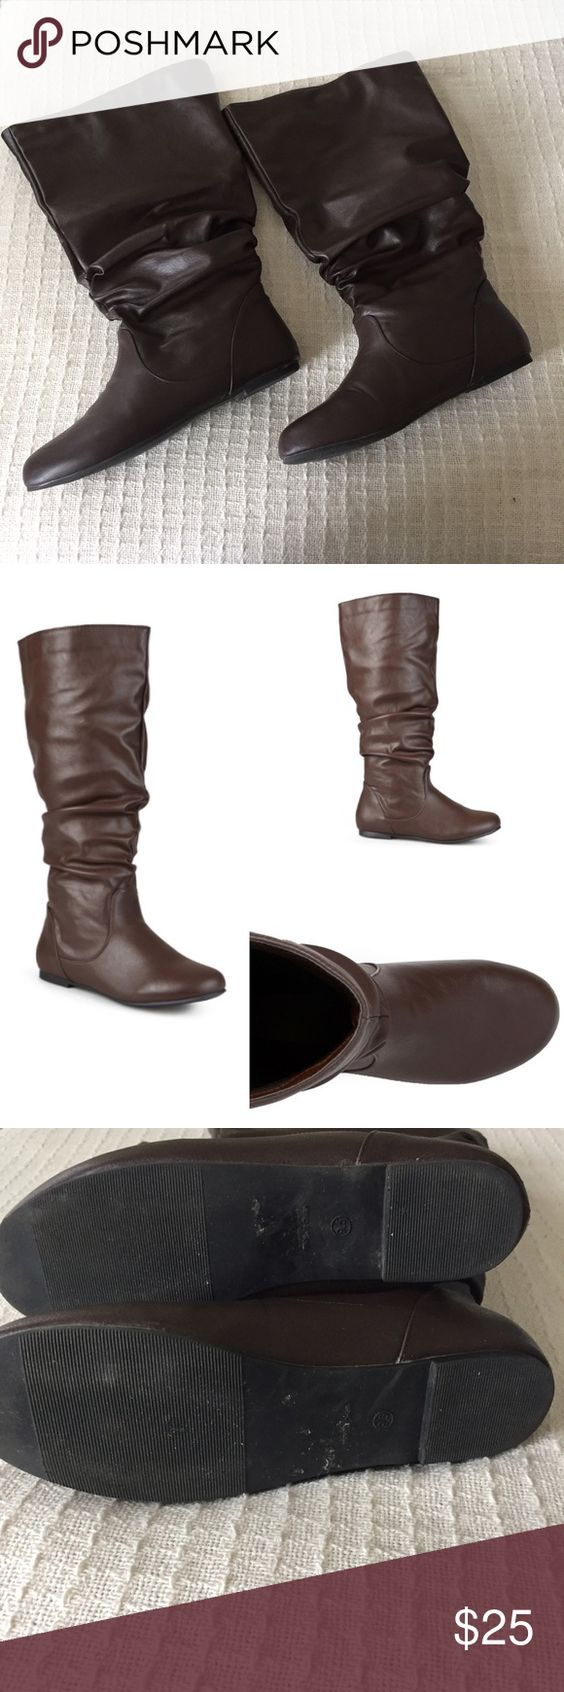 "Brown Wide Calf Boots Journee Collection Jayne style tall boots. Slouchy faux leather material. 16"" shaft height, pull on. Calf is considered extra wide and measures at 18"" (according to website). Worn once. Has a few nicks at the heel and in one toe. Round toe. No heel. Basically a flat tall boot. Journee Collection Shoes"